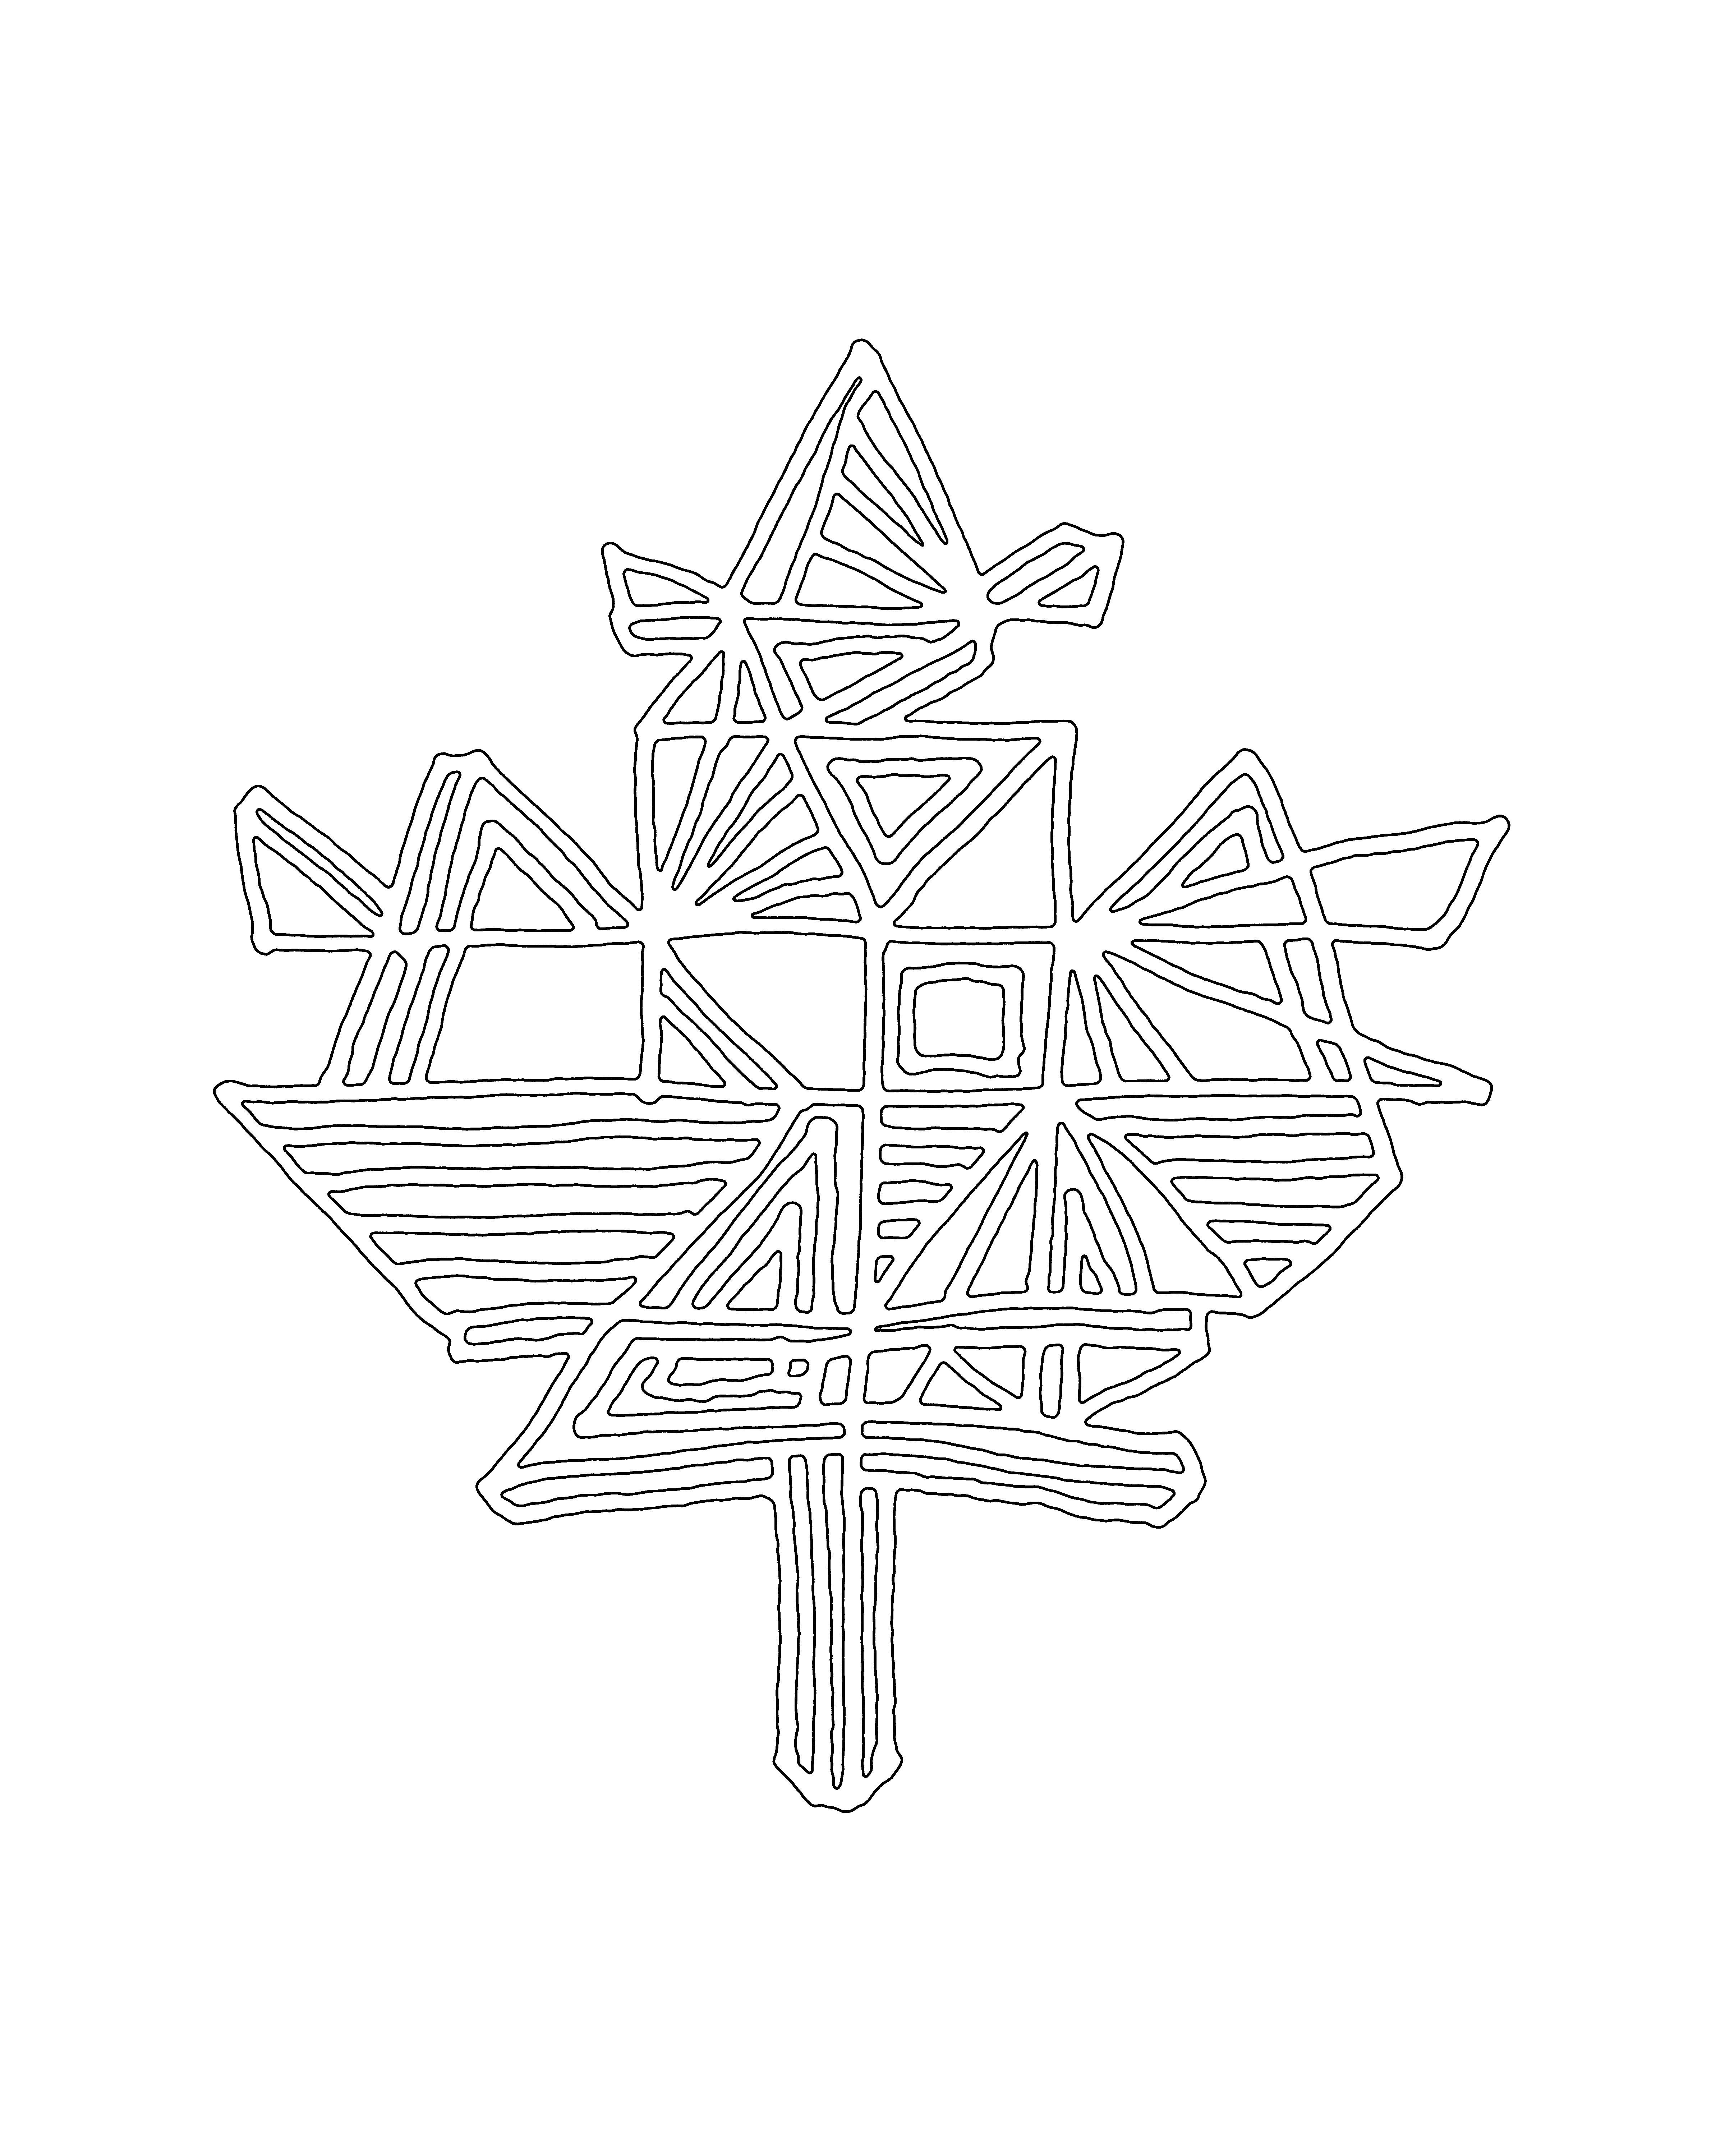 Colouring pages for november - Abstract Line Drawing Page 5853 The 10 000 Page Colouring Book Canadian Maple Leaf Canada 150 Logo Alternative Free Colouring Page For Adults And